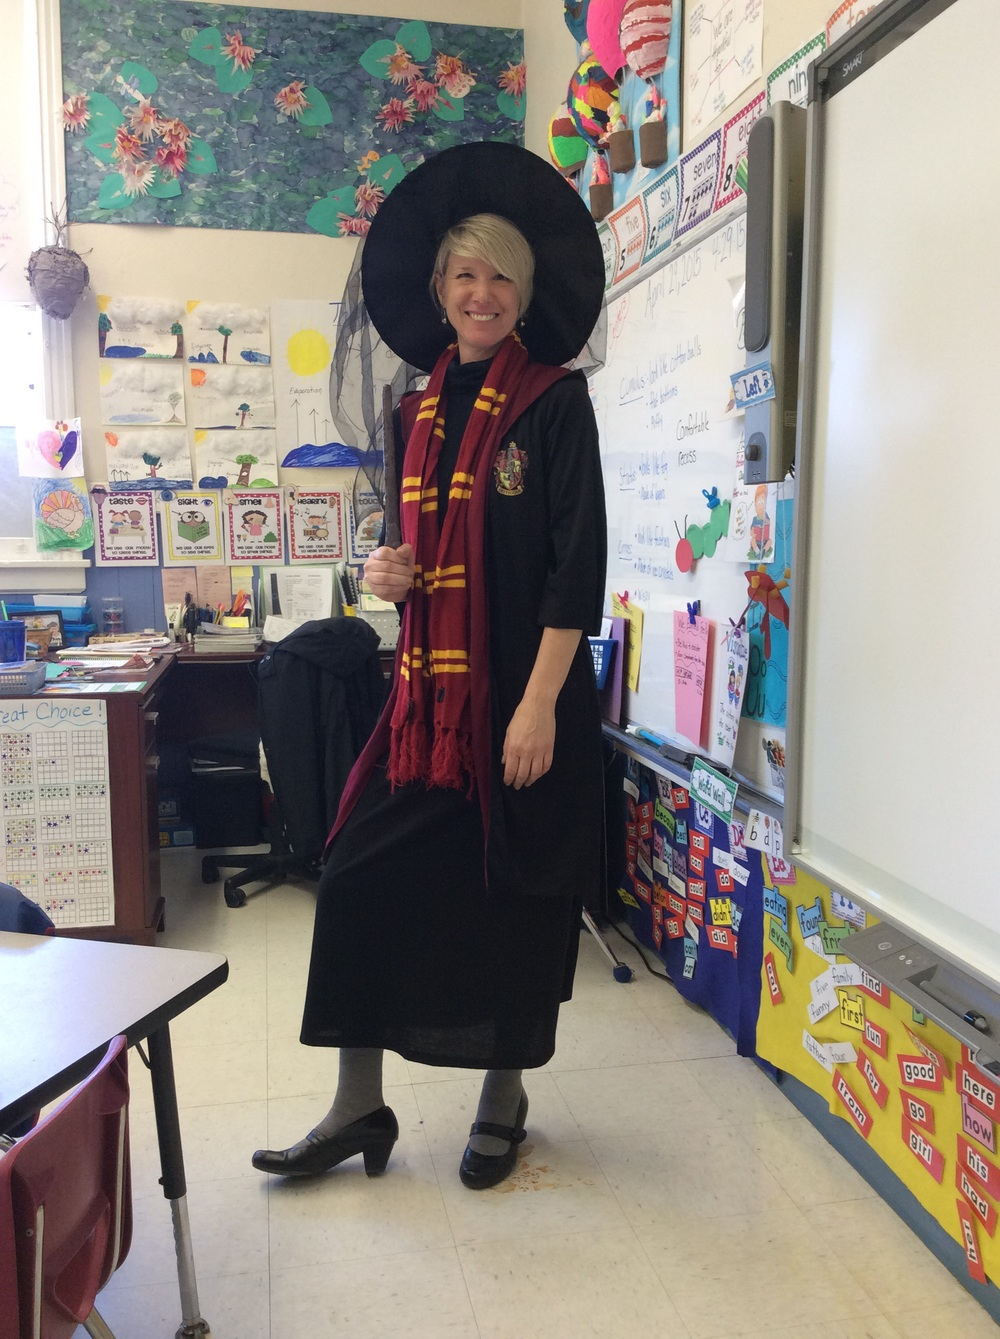 Mrs. Costello is Professor Dumbledor from Harry Potter